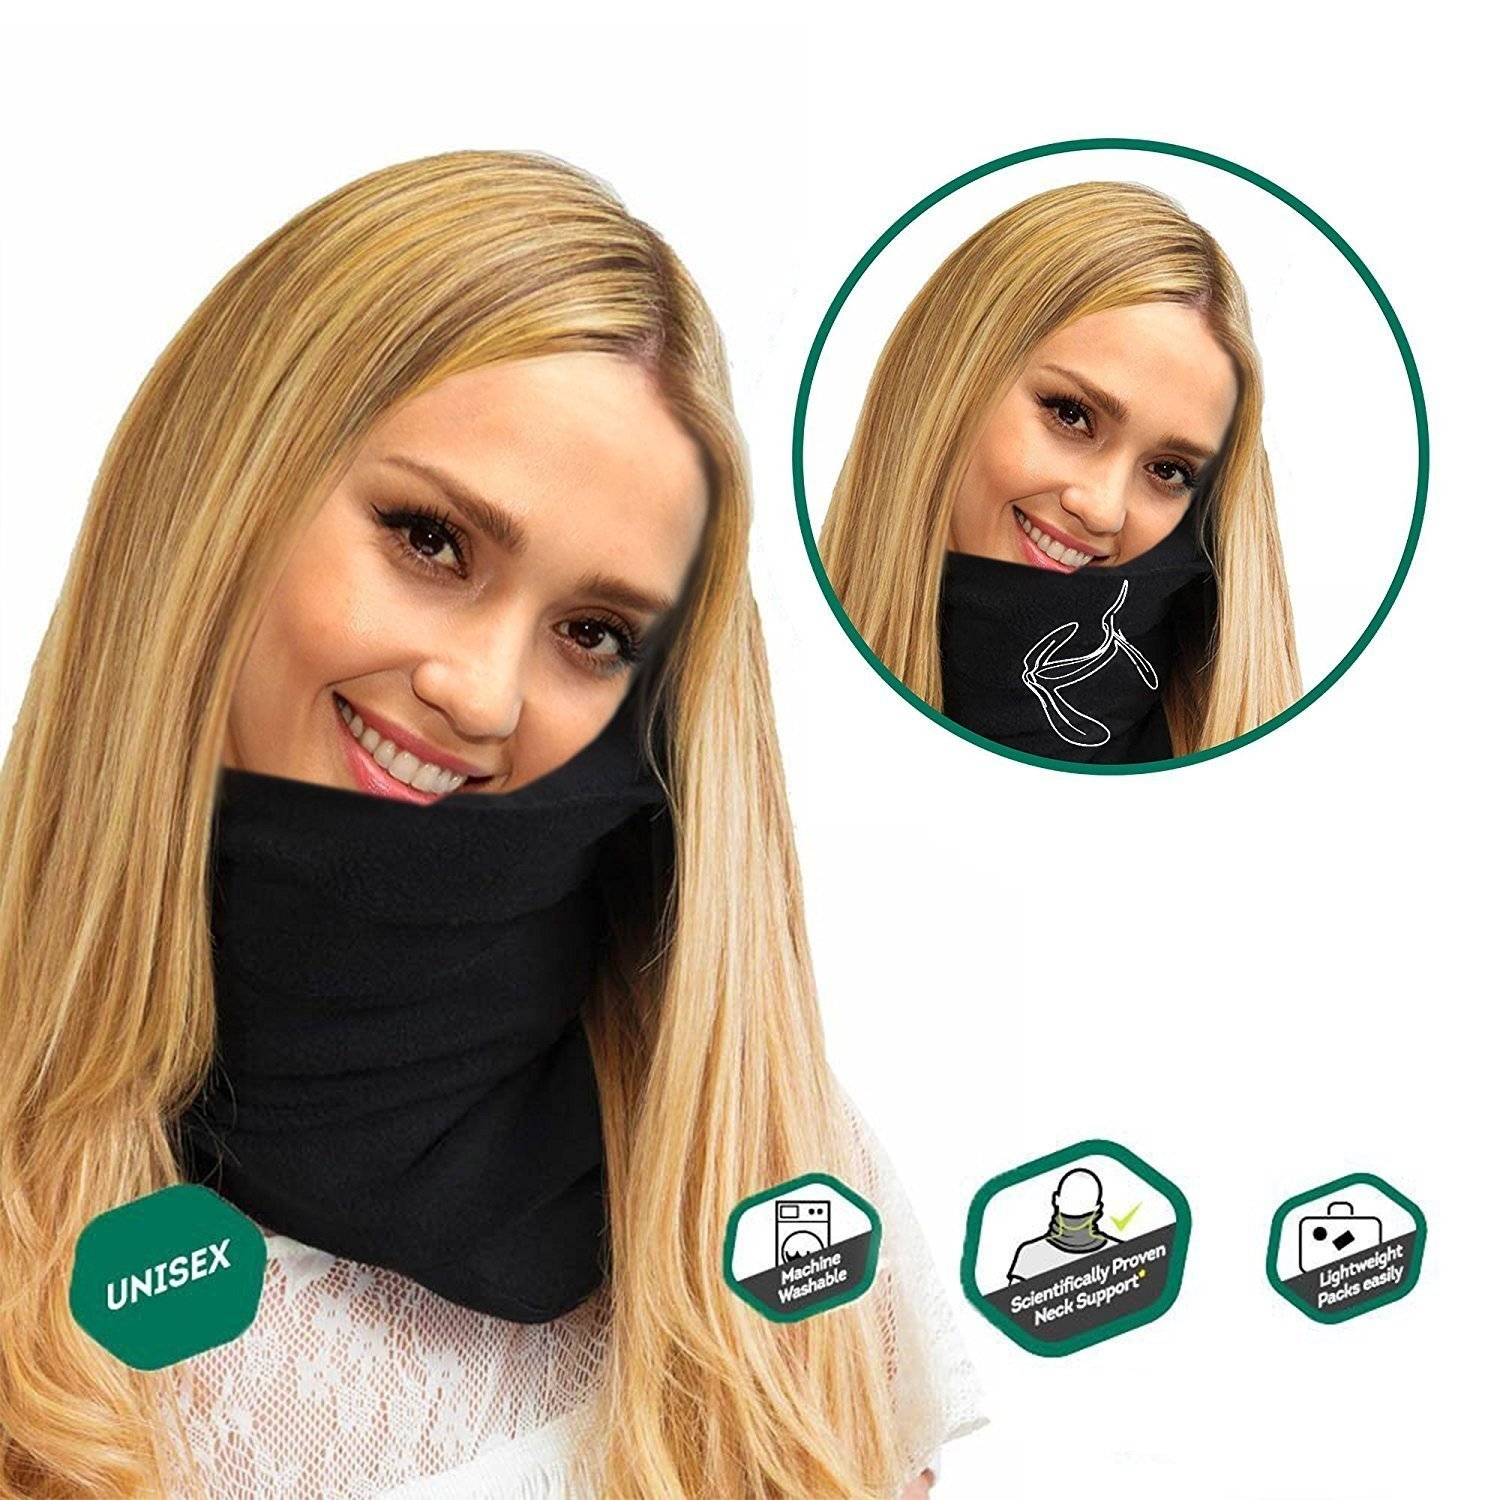 The Super Soft, Compact Trident Travel Pillow - Scientifically Designed for Comfort and Optimal Head & Neck Support - Perfect for Air, Car, Train and Bus Travel - Black Ward Media Group